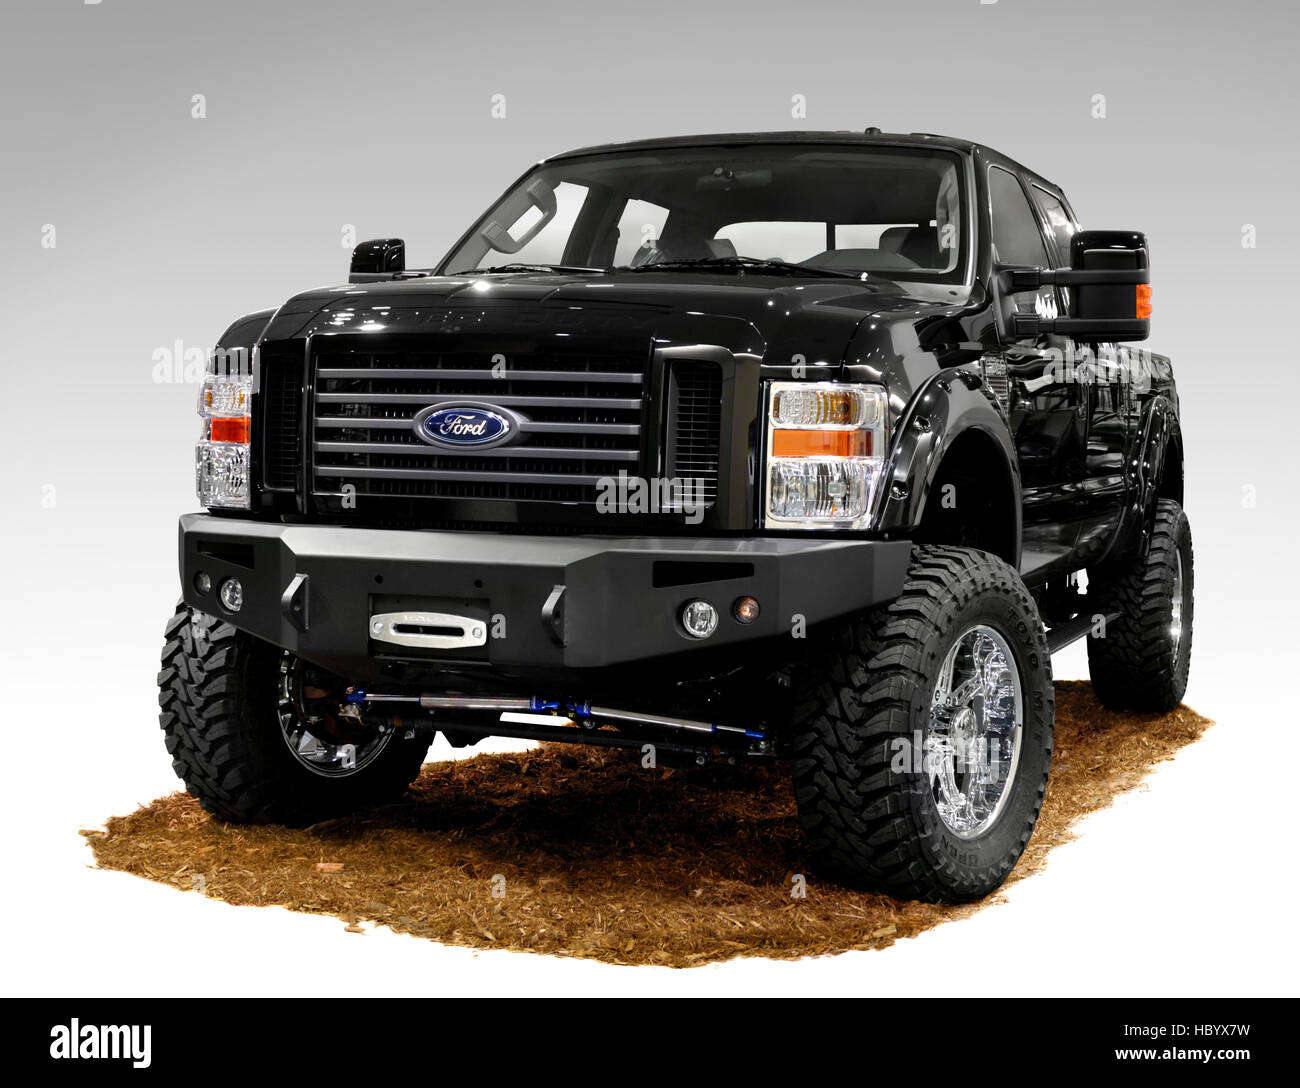 Customized Ford Pick Up Truck Stock Photos 1955 F100 White 4x4 Black Super Duty Pickup 2008 By National 4wd Centres Image